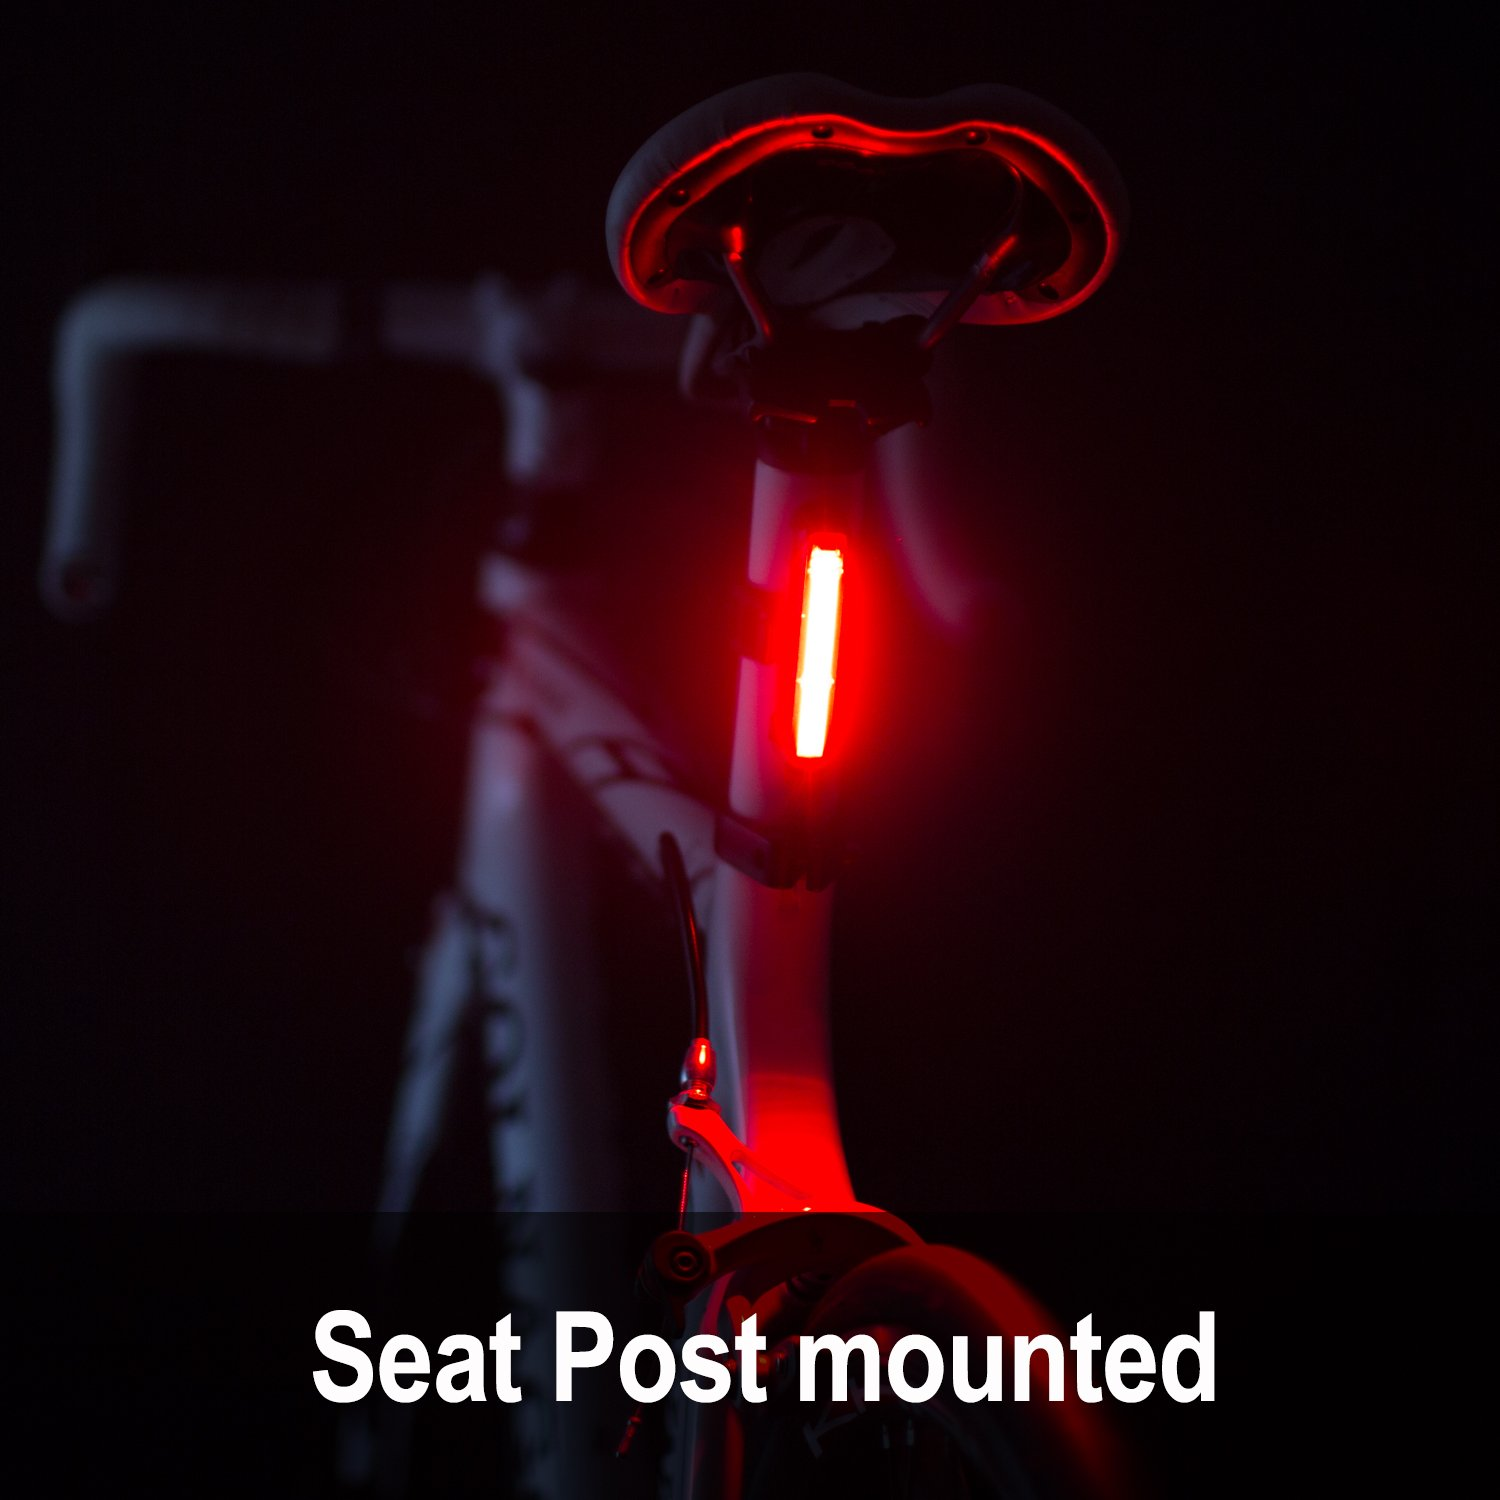 Cygolite Hotrod 50 lm USB Rechargeable Bicycle Tail Light by Cygolite (Image #5)